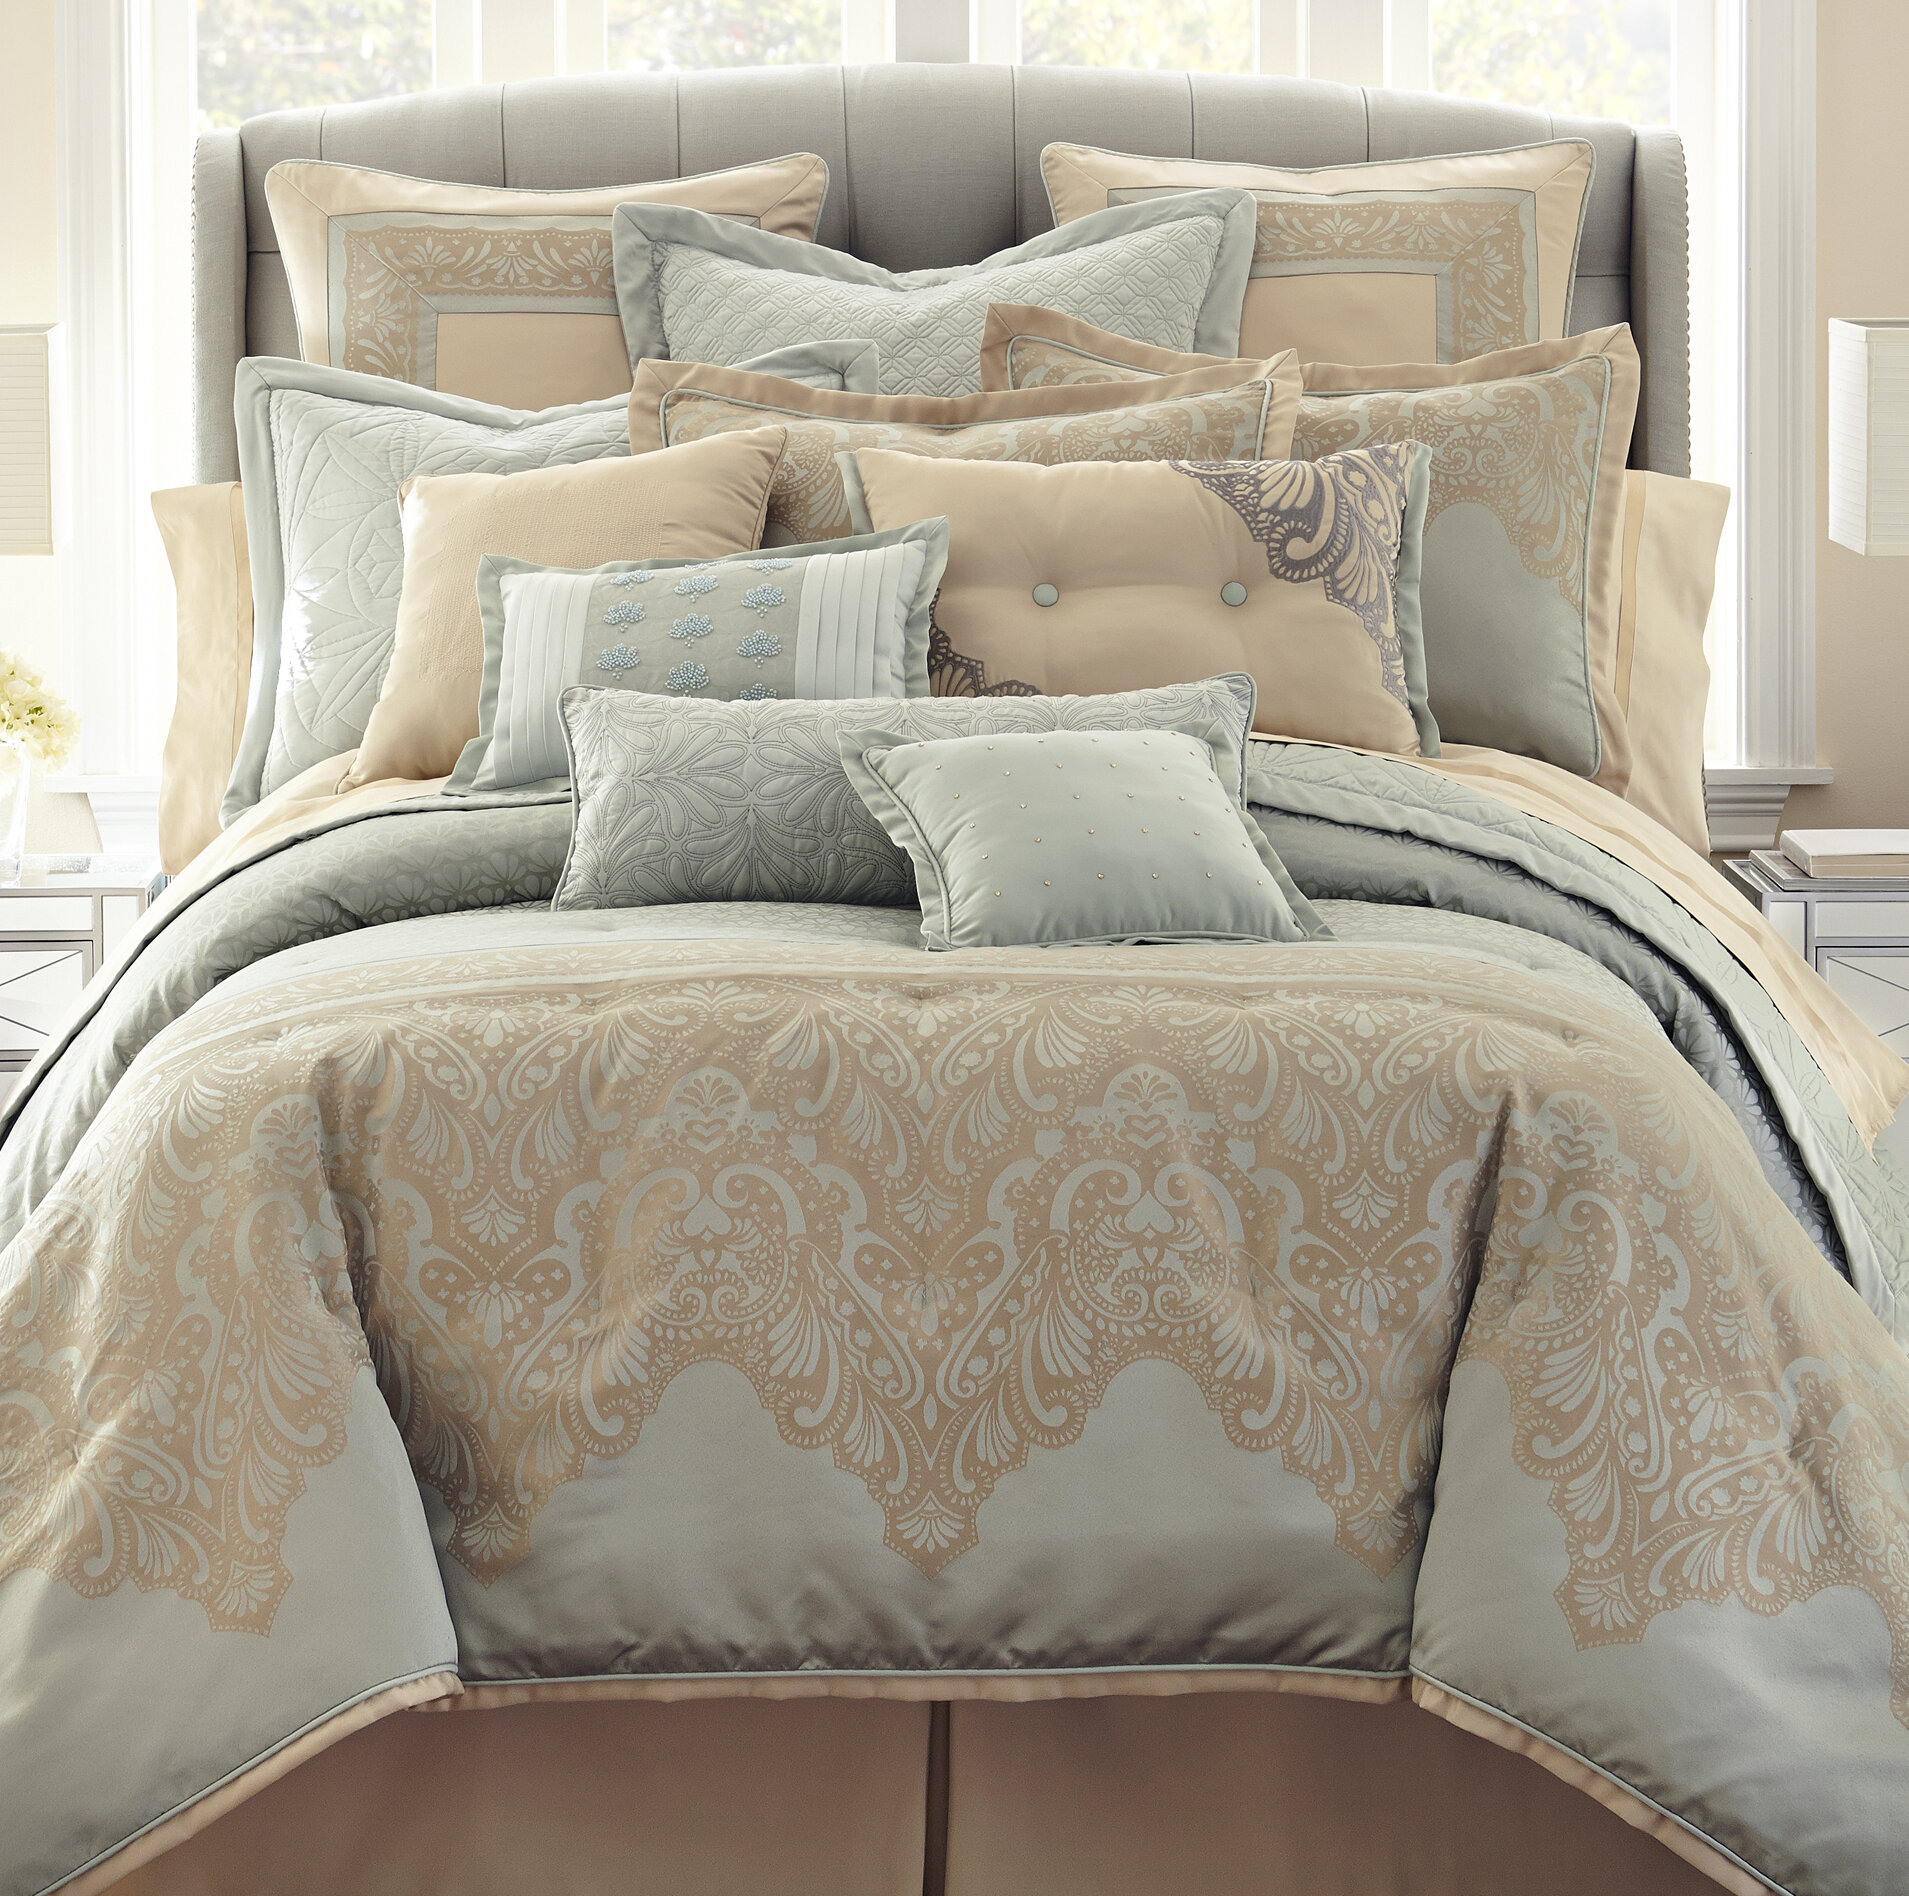 5 Pieces Reversible Diamond Quilted Bedspread Comforter//Throw Bed Set